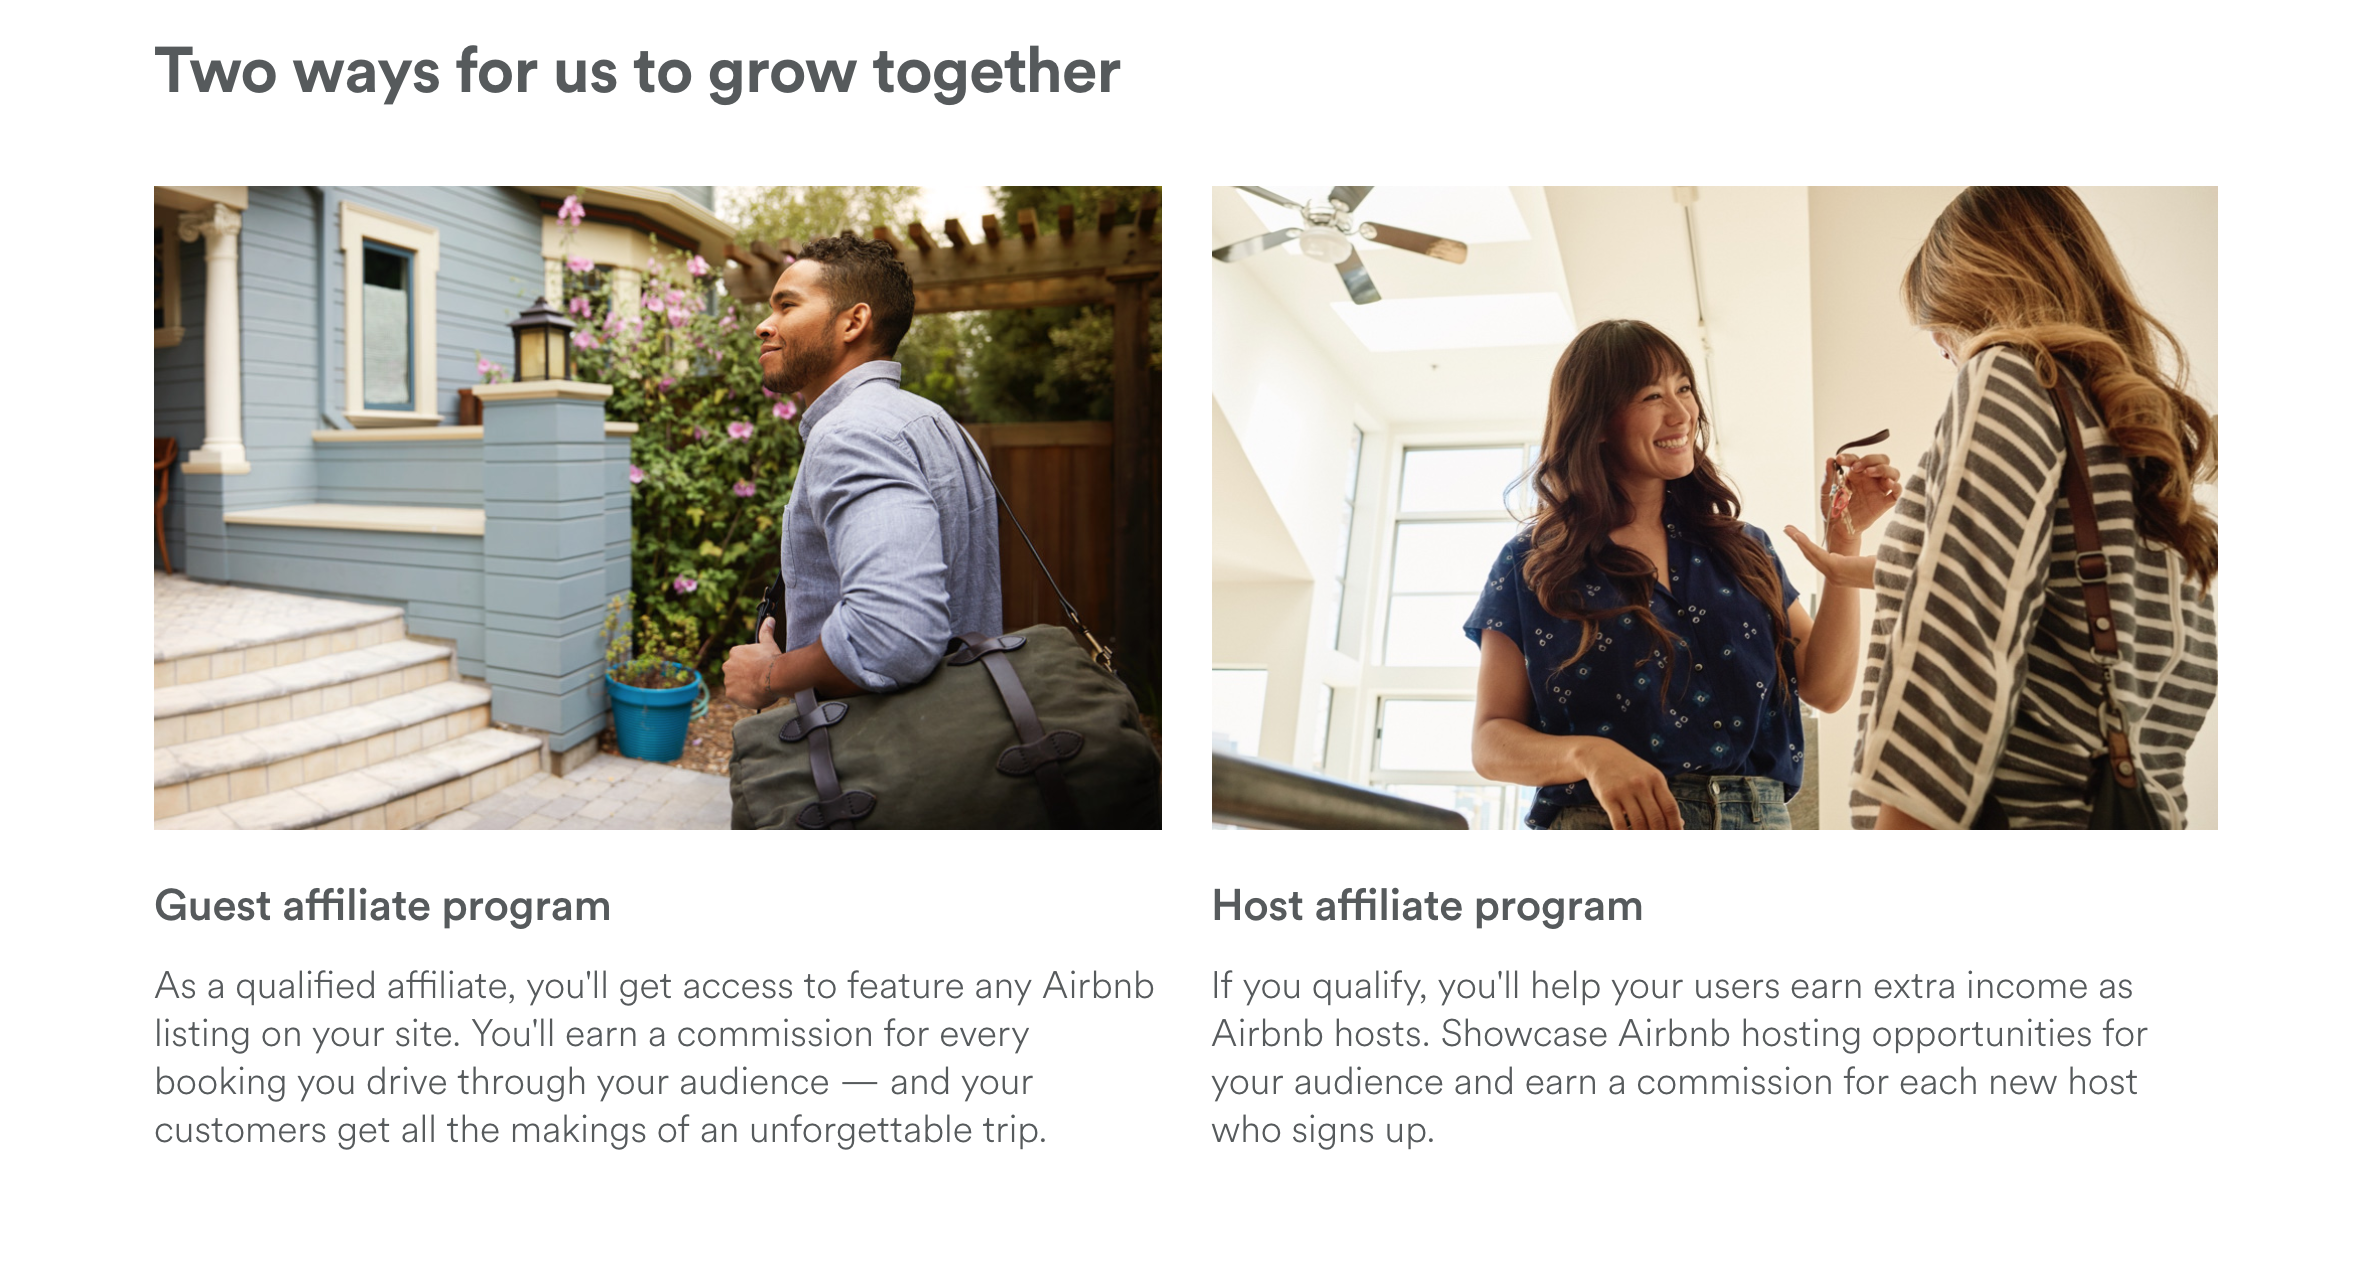 Airbnb eyes expansion with affiliate program for sites with 1M+ users, new API